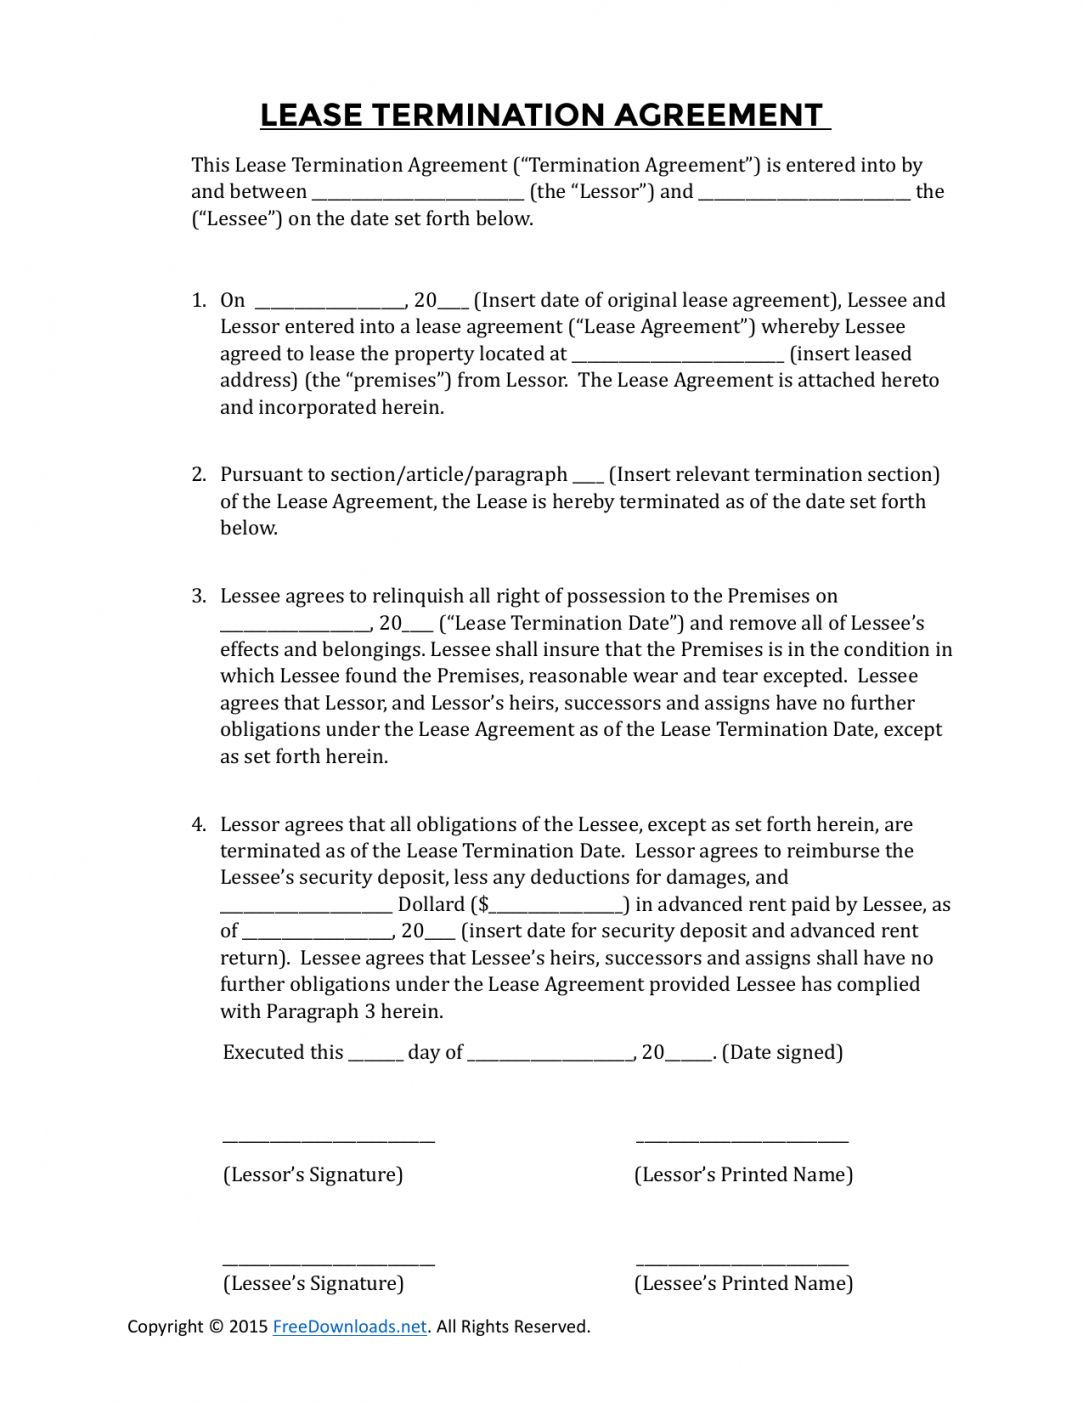 Get Our Image of Cancellation Of Lease Agreement Template